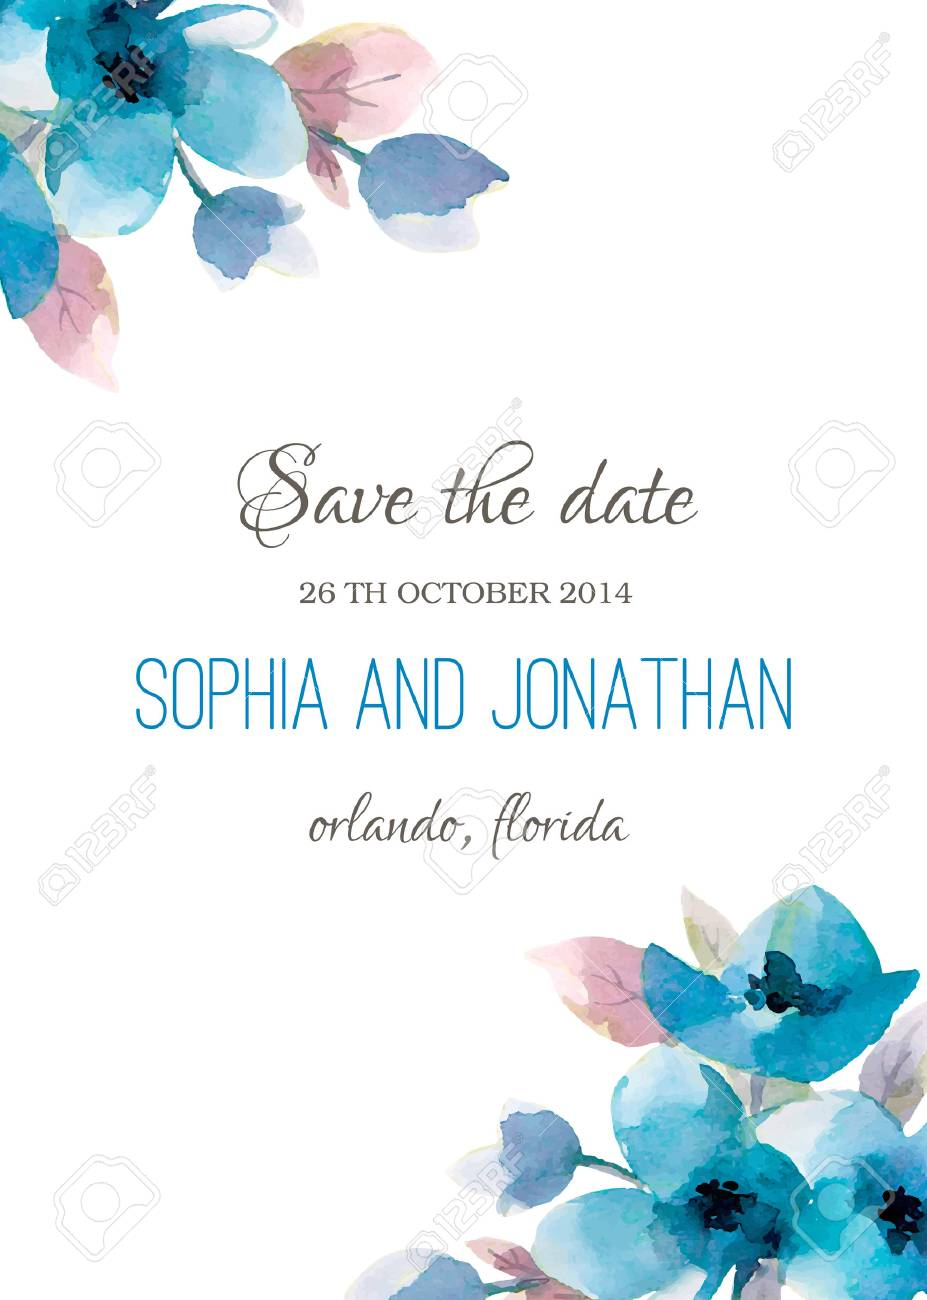 Wedding Invitation Watercolor With Flowers Illustration For